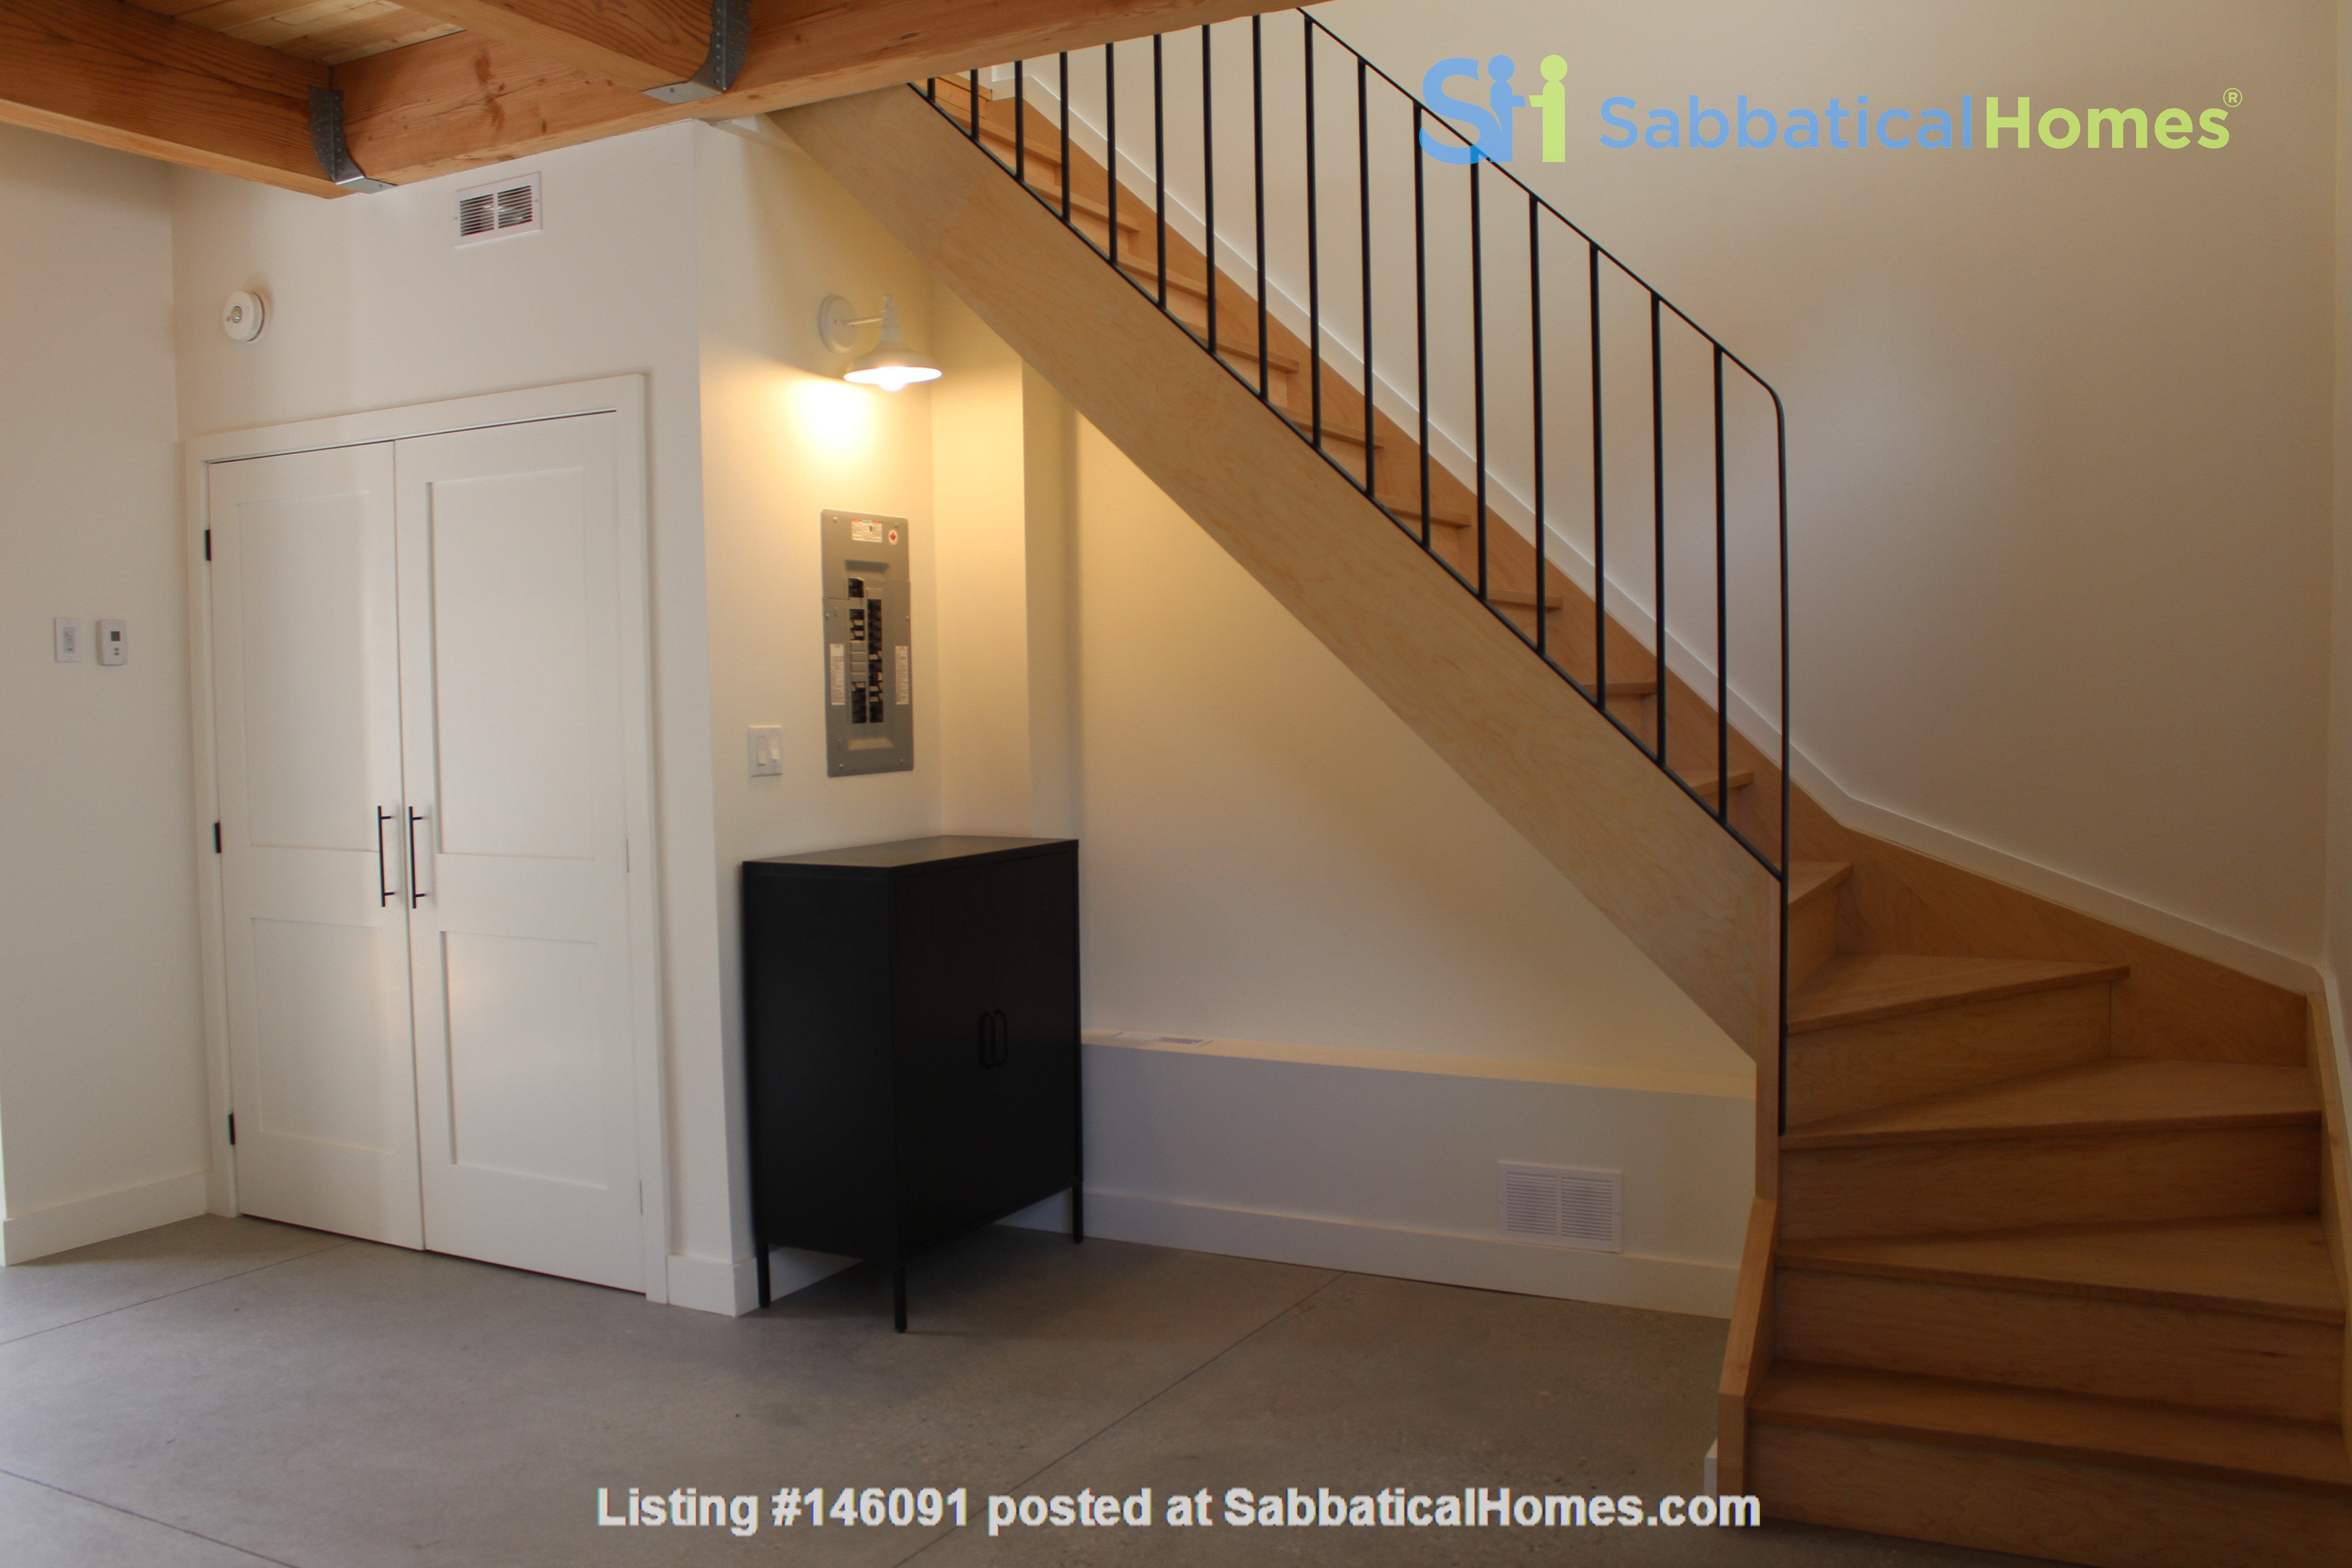 Looking for a beautiful, brand new home near the University of Toronto? Home Rental in Toronto 2